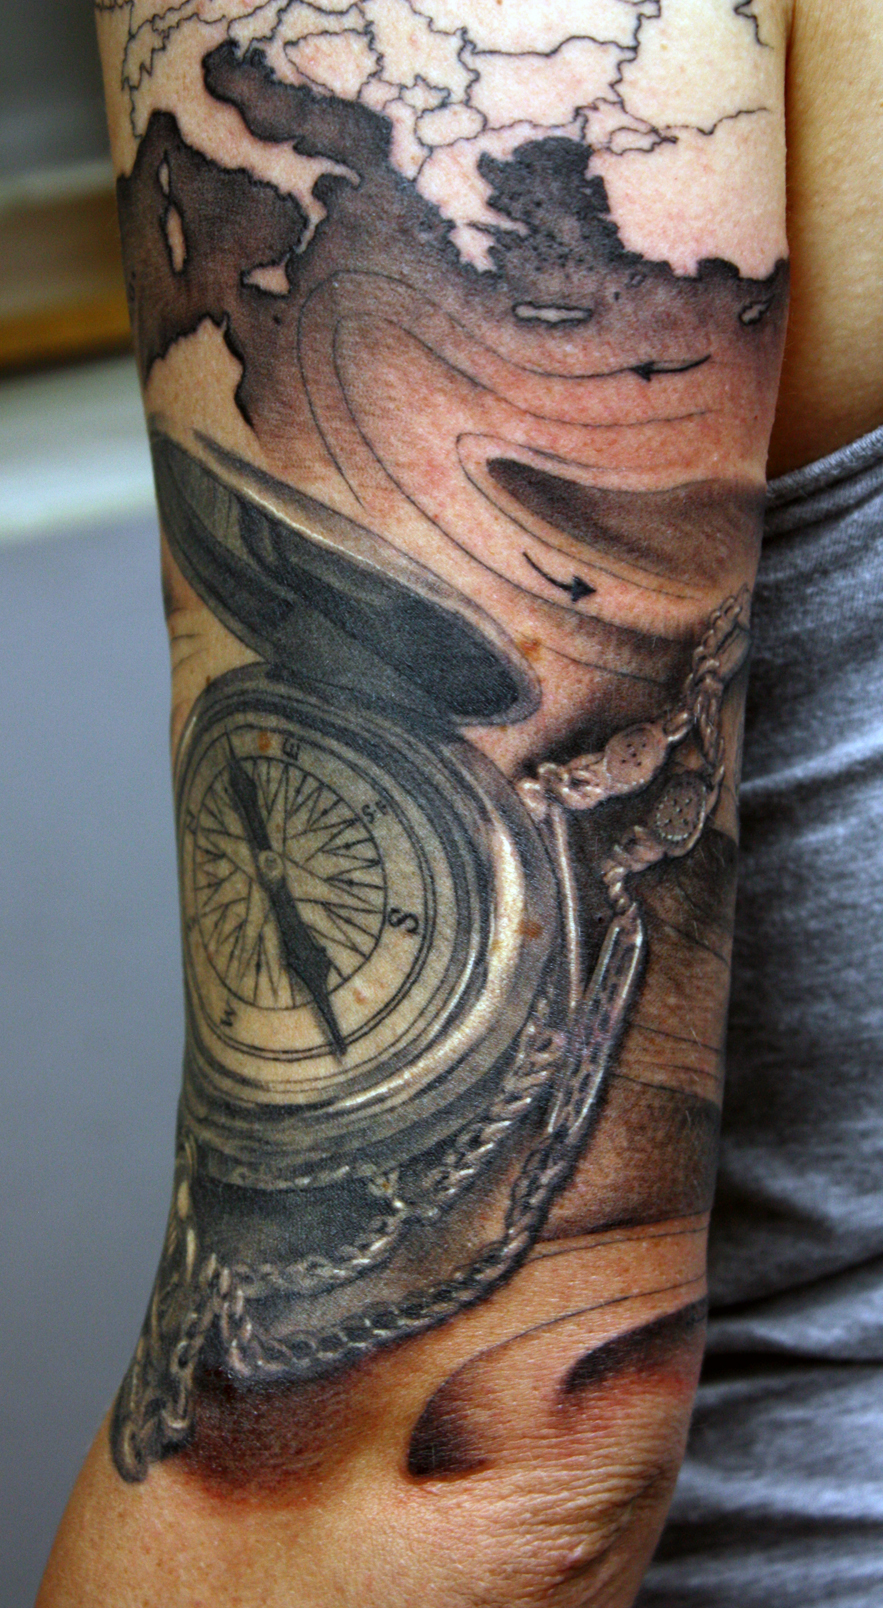 Compass and map half arm, Half healed